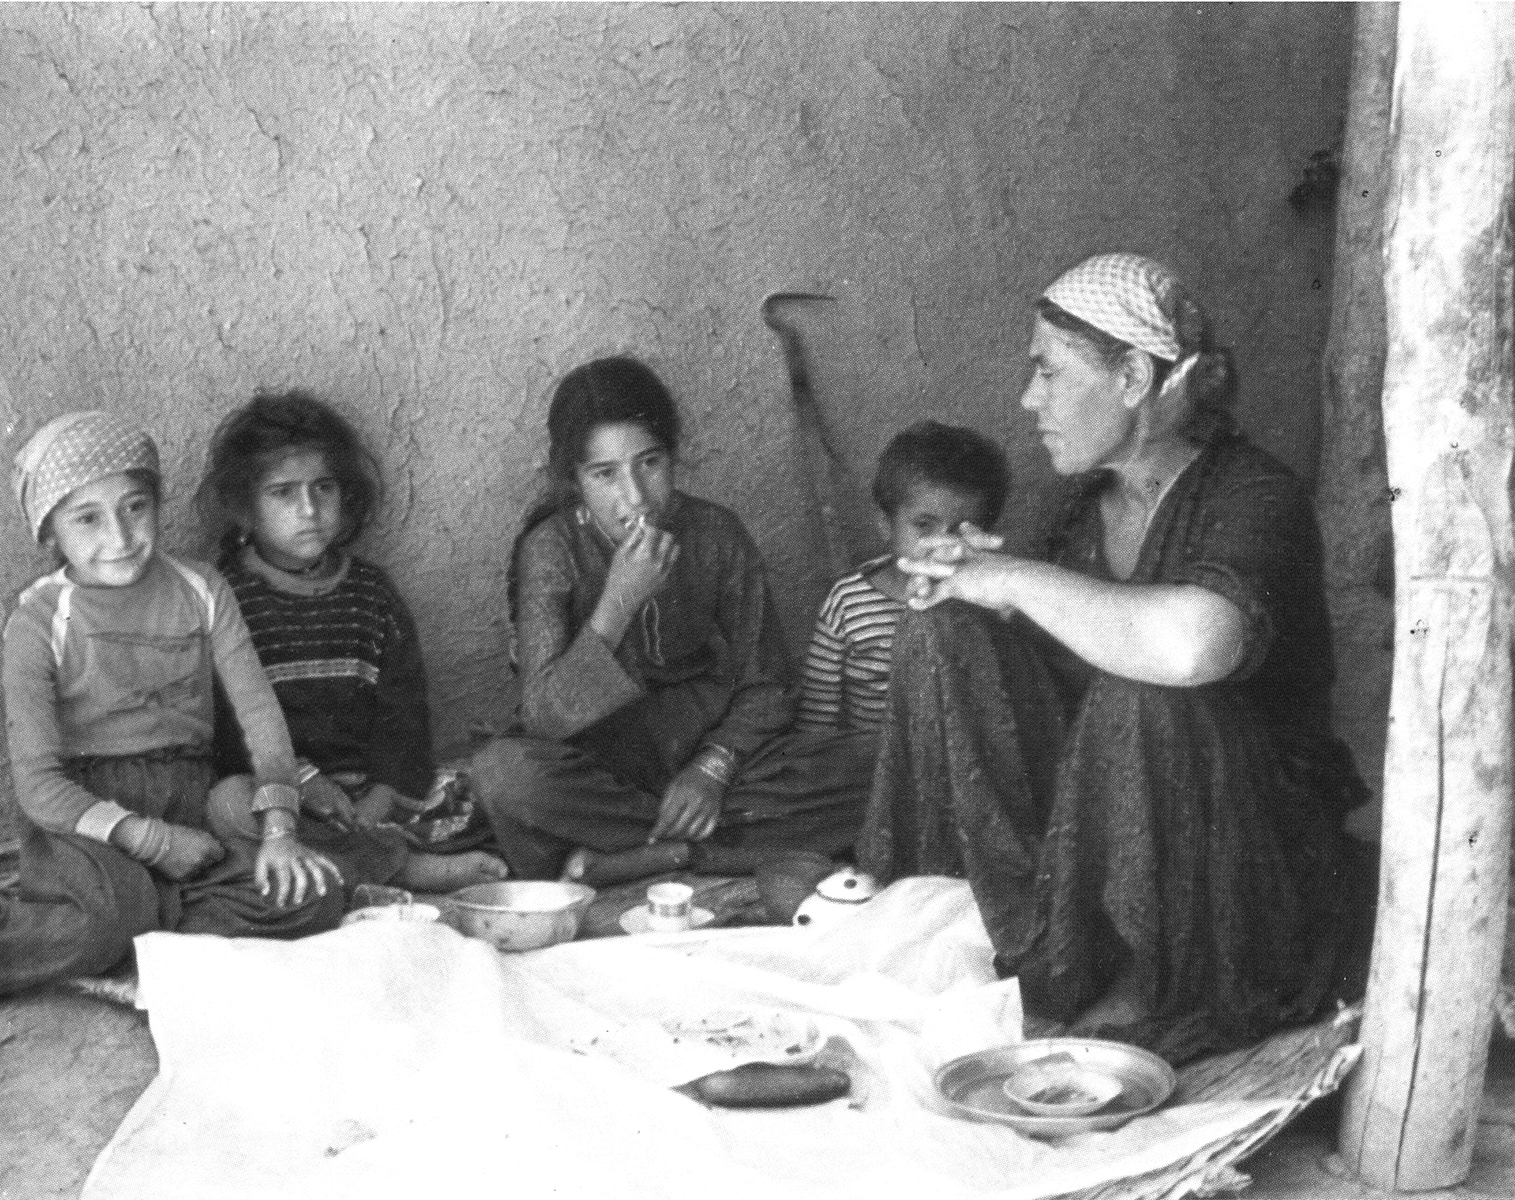 Kurdish children and woman sitting small